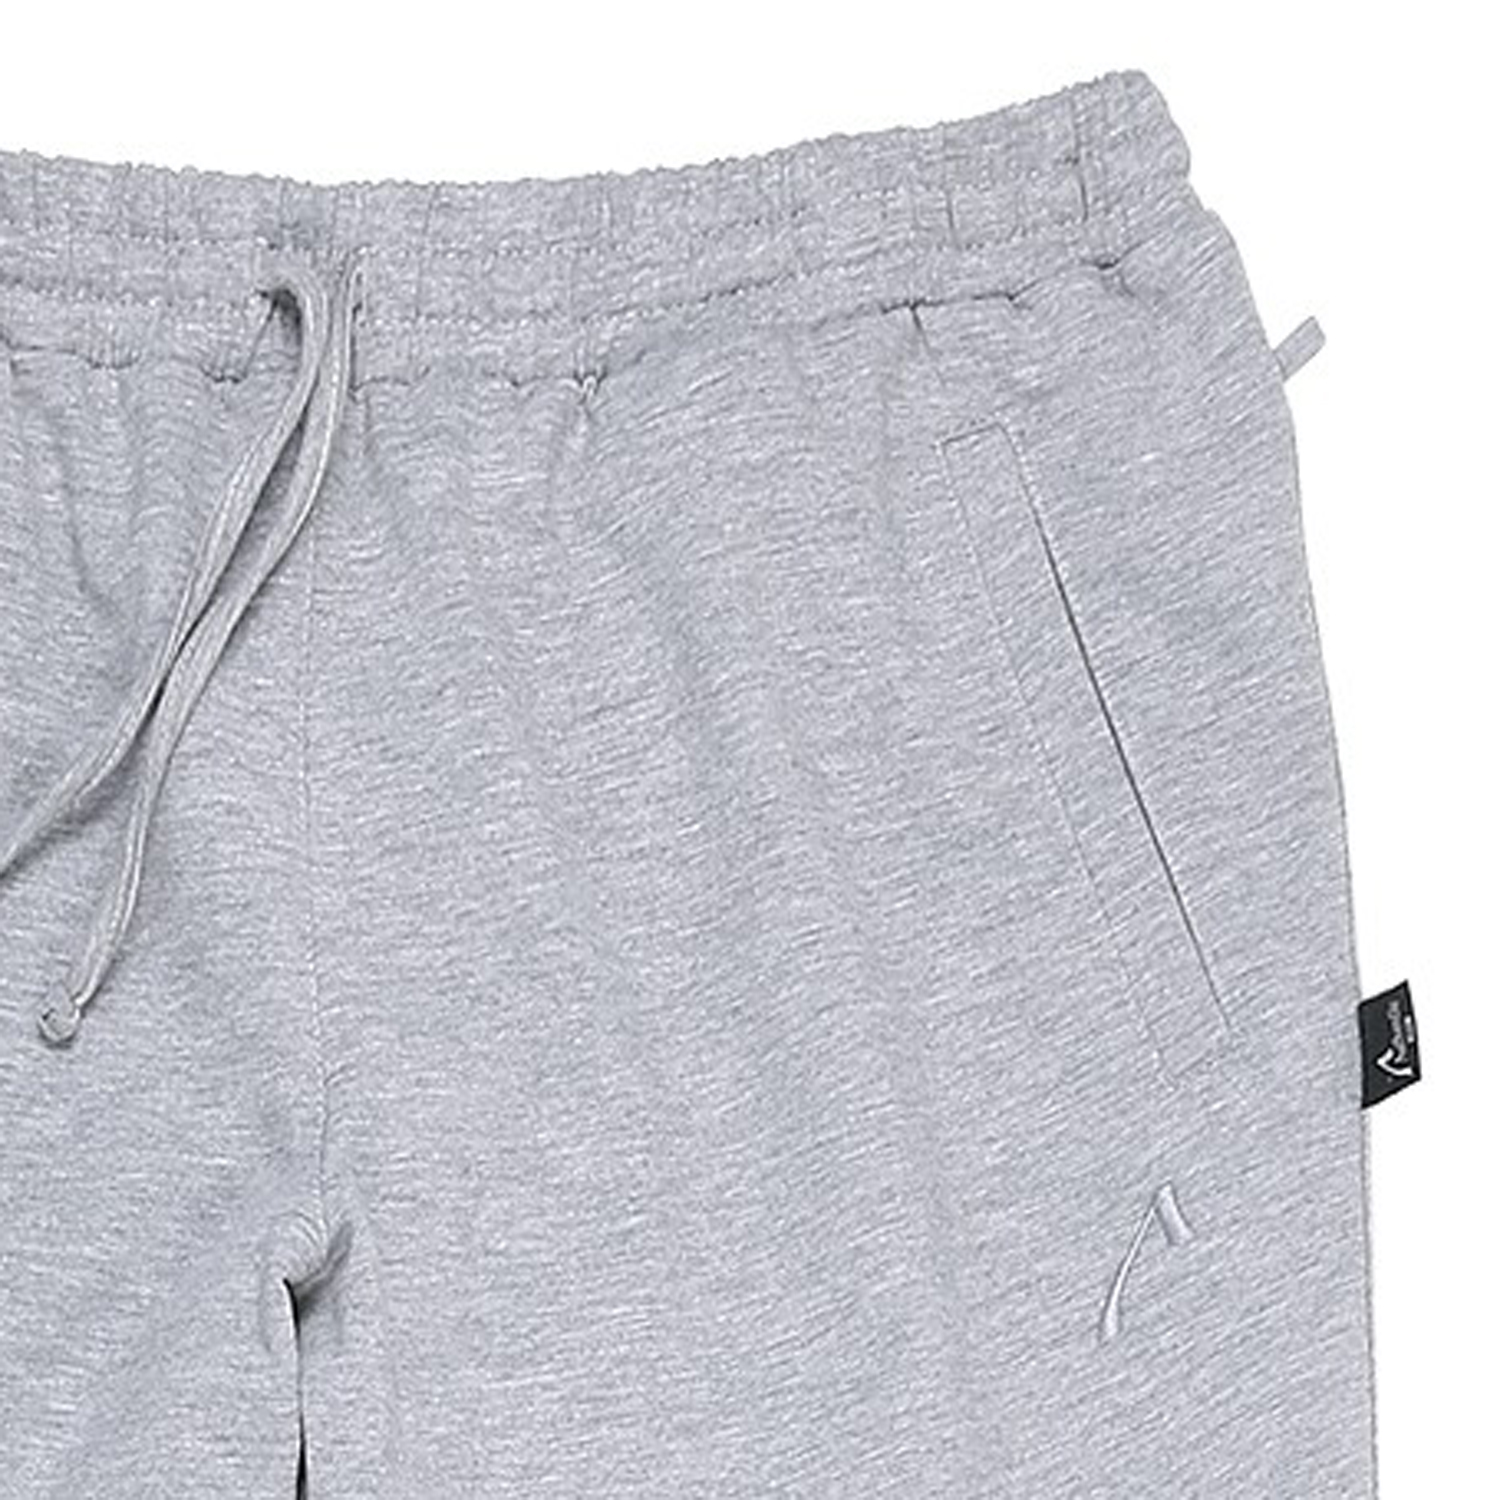 Detail Image to Sports and leisure sweatpants in grey, plus sizes by AUTHENTIC KLEIN